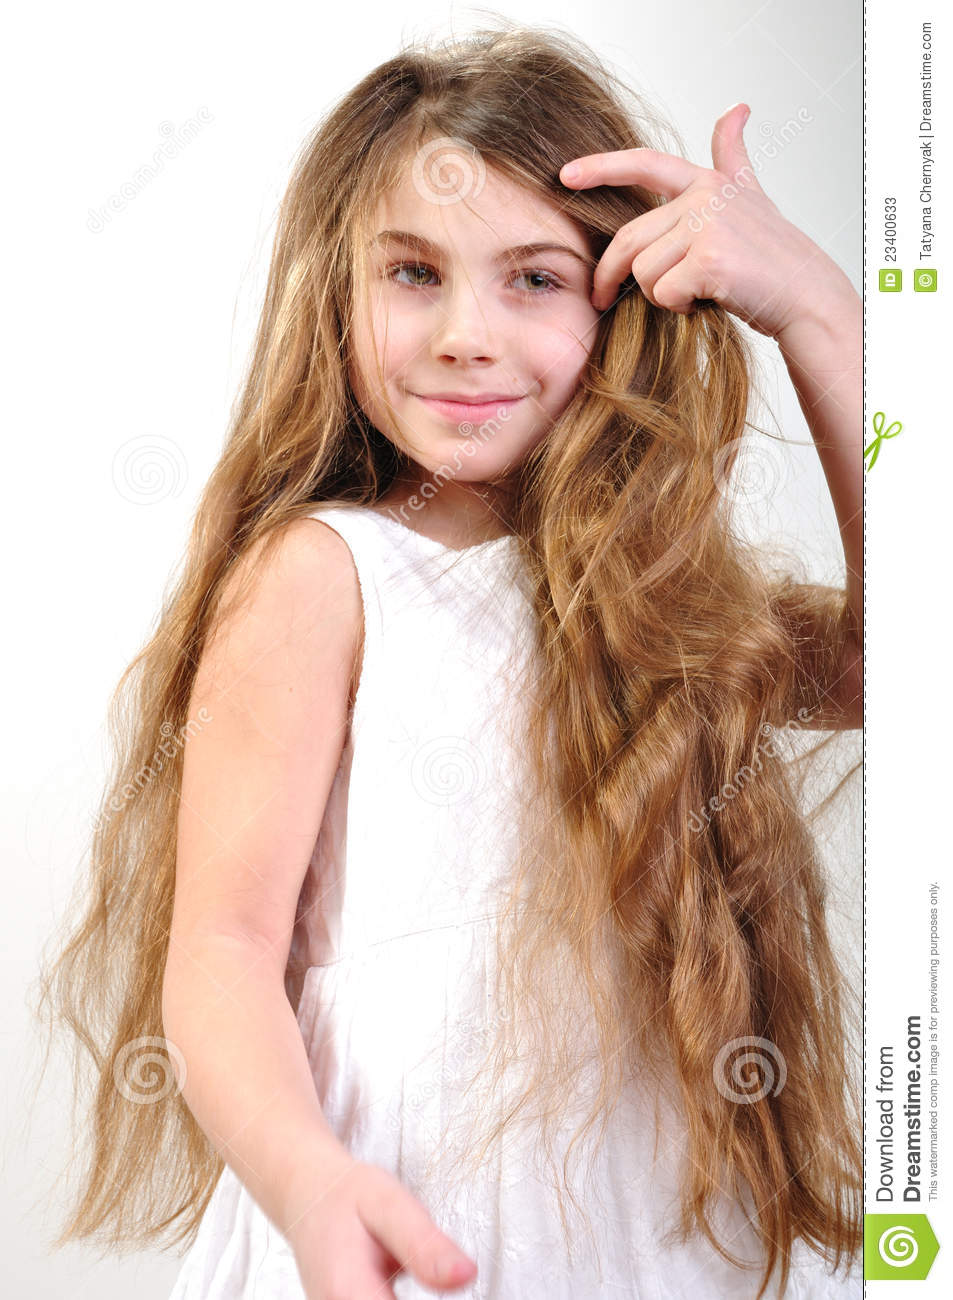 Child With Long Hair Stock Image Image Of Girl Looking